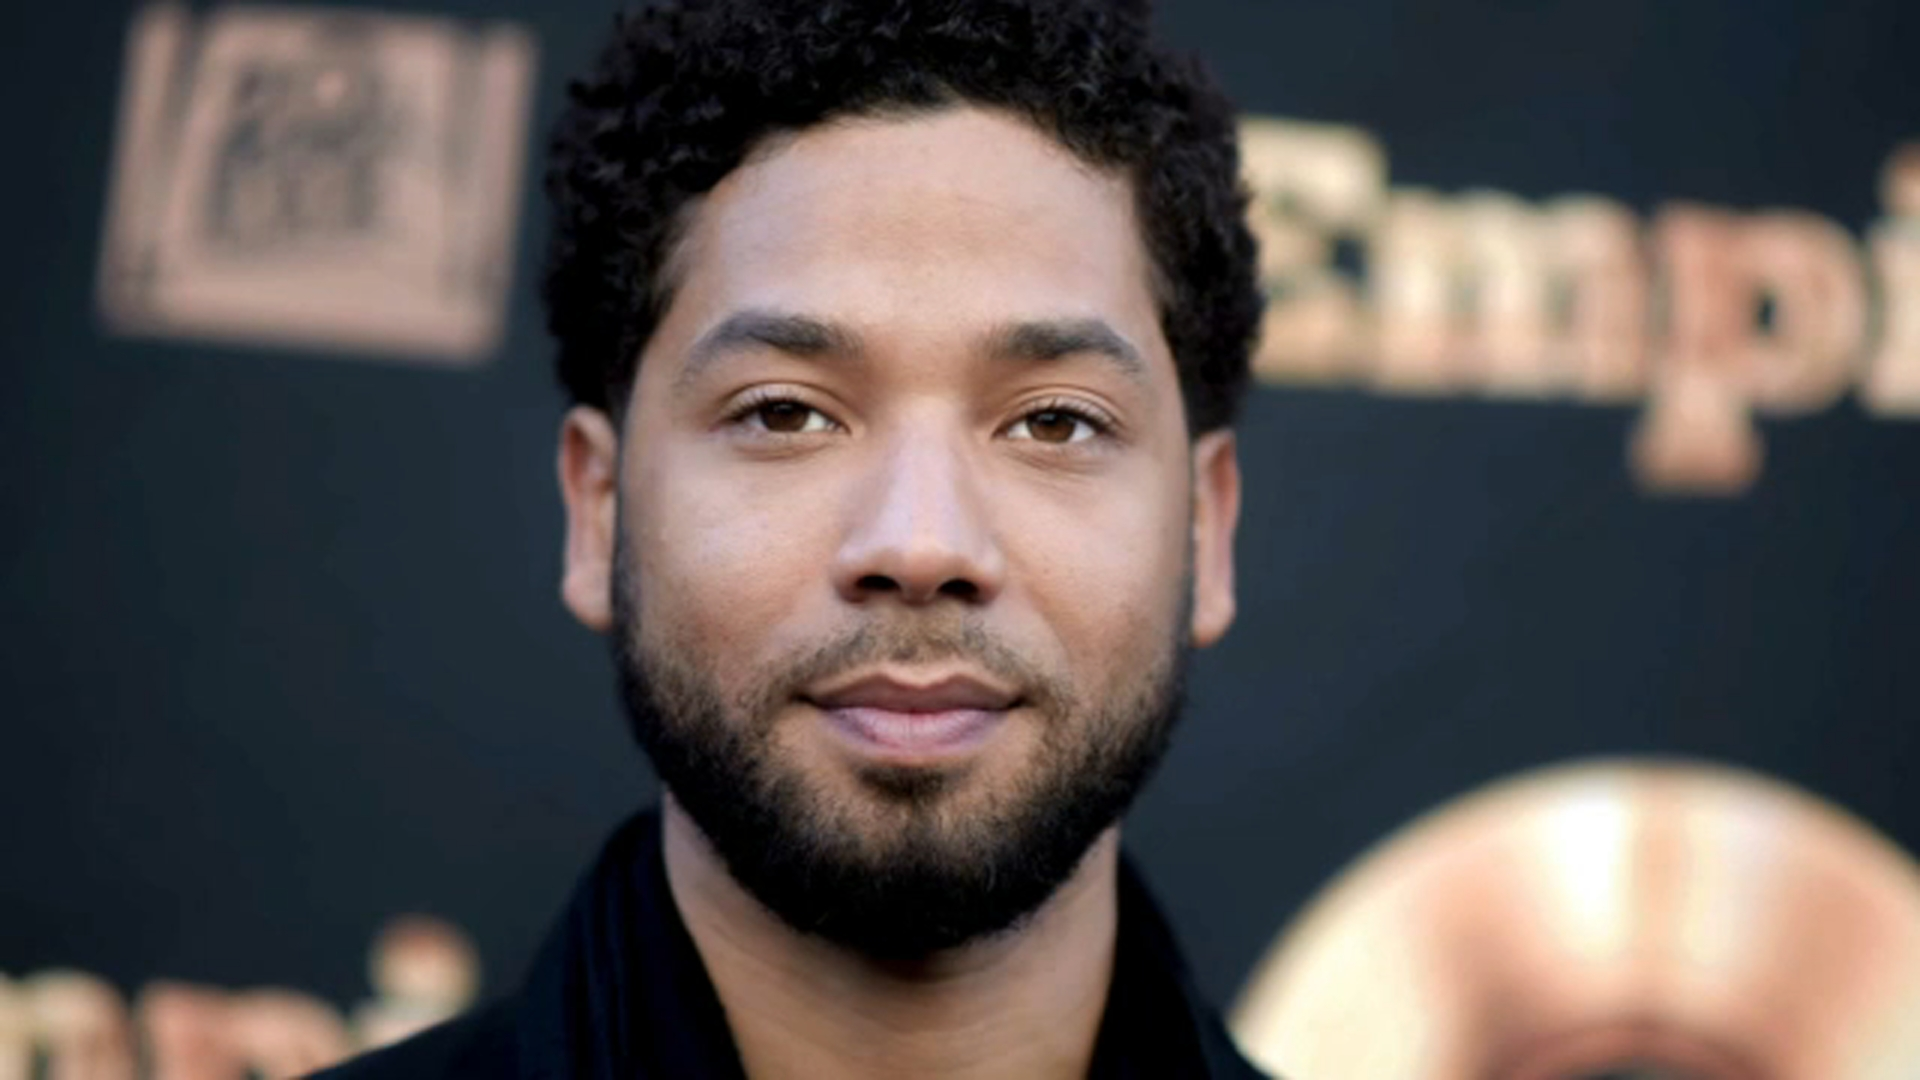 Two brothers, once considered suspects in the reported attack on Jussie Smollett, are speaking out.